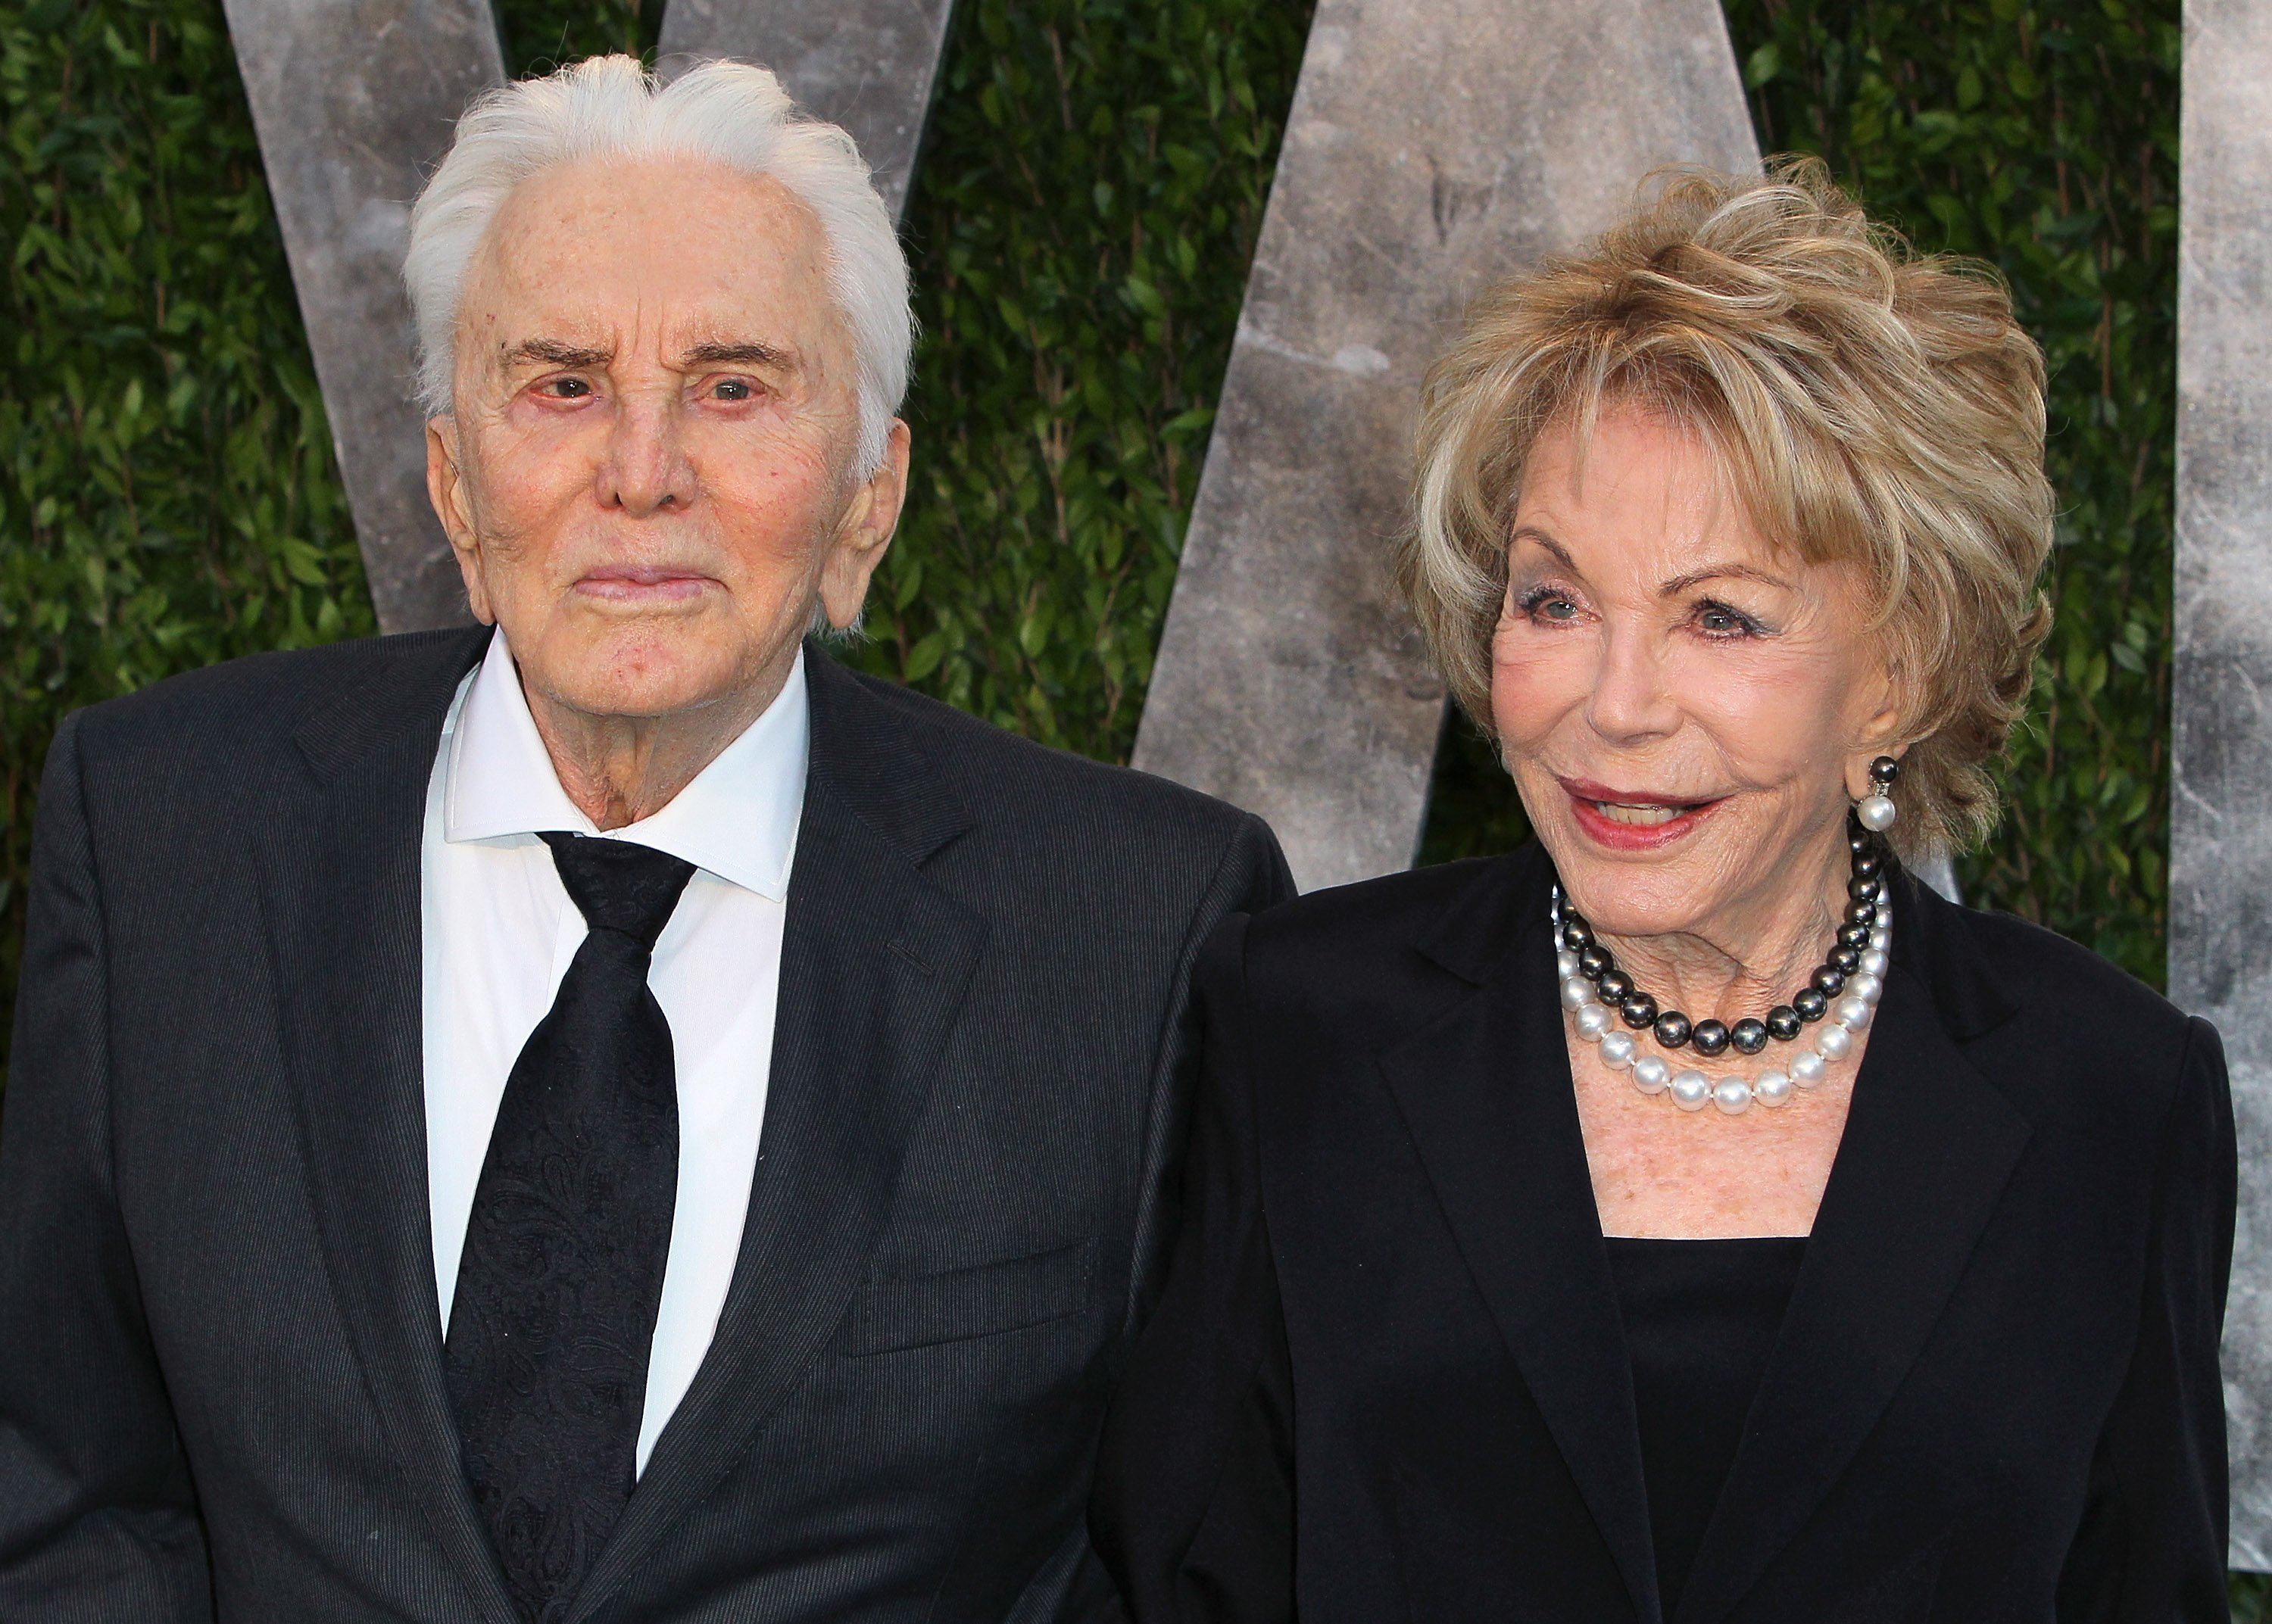 Kirk Douglas and wife Anne Douglas attend the 2013 Vanity Fair Oscar Party at the Sunset Tower Hotel on February 24, 2013, in West Hollywood, California. | Source: Getty Images.